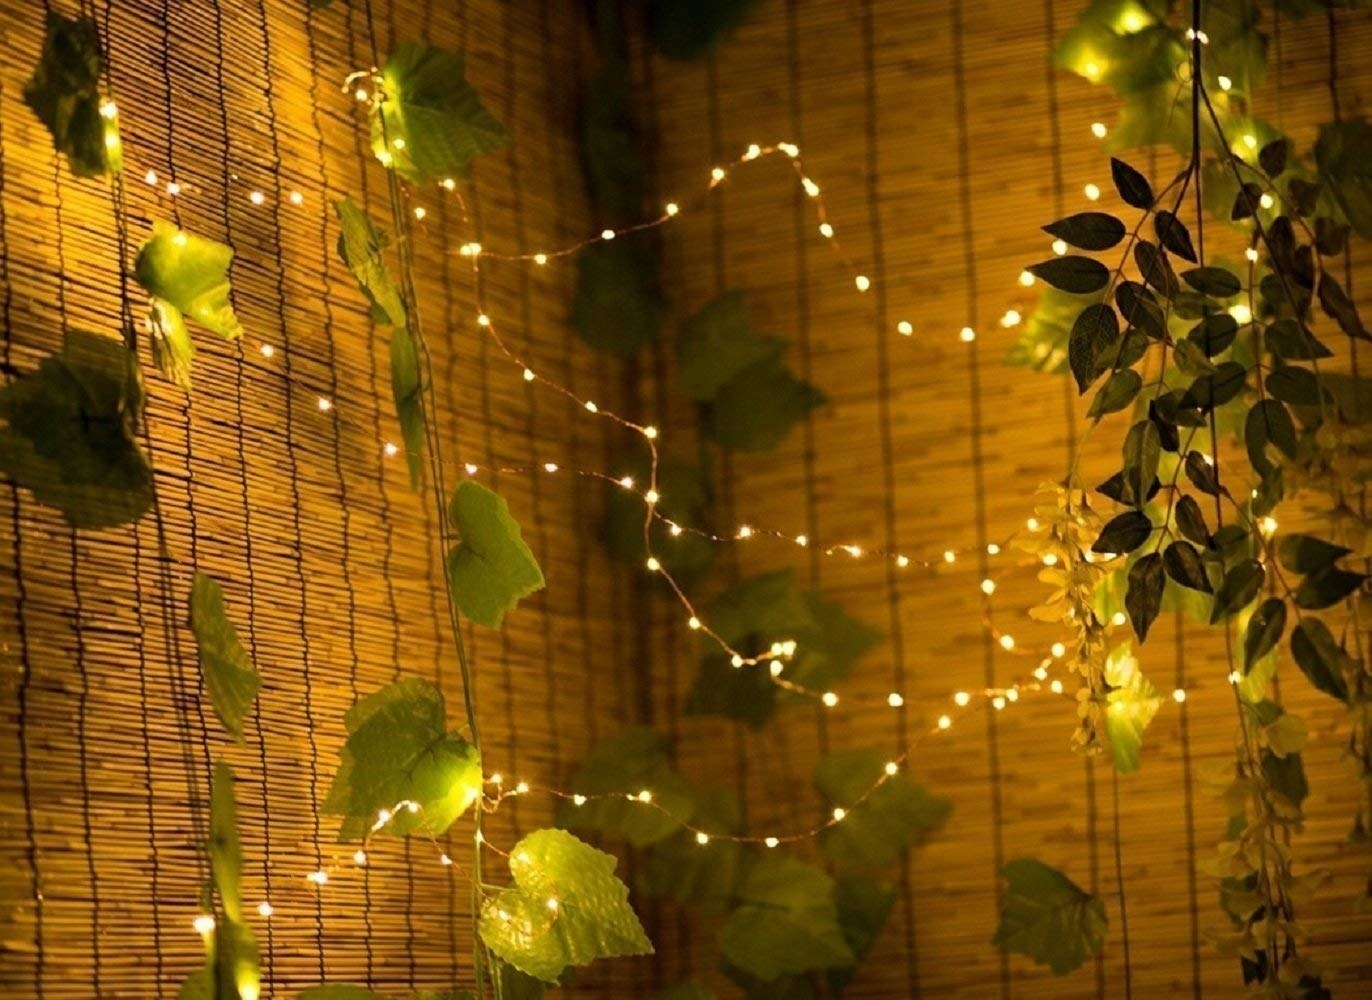 The string lights hung on plants